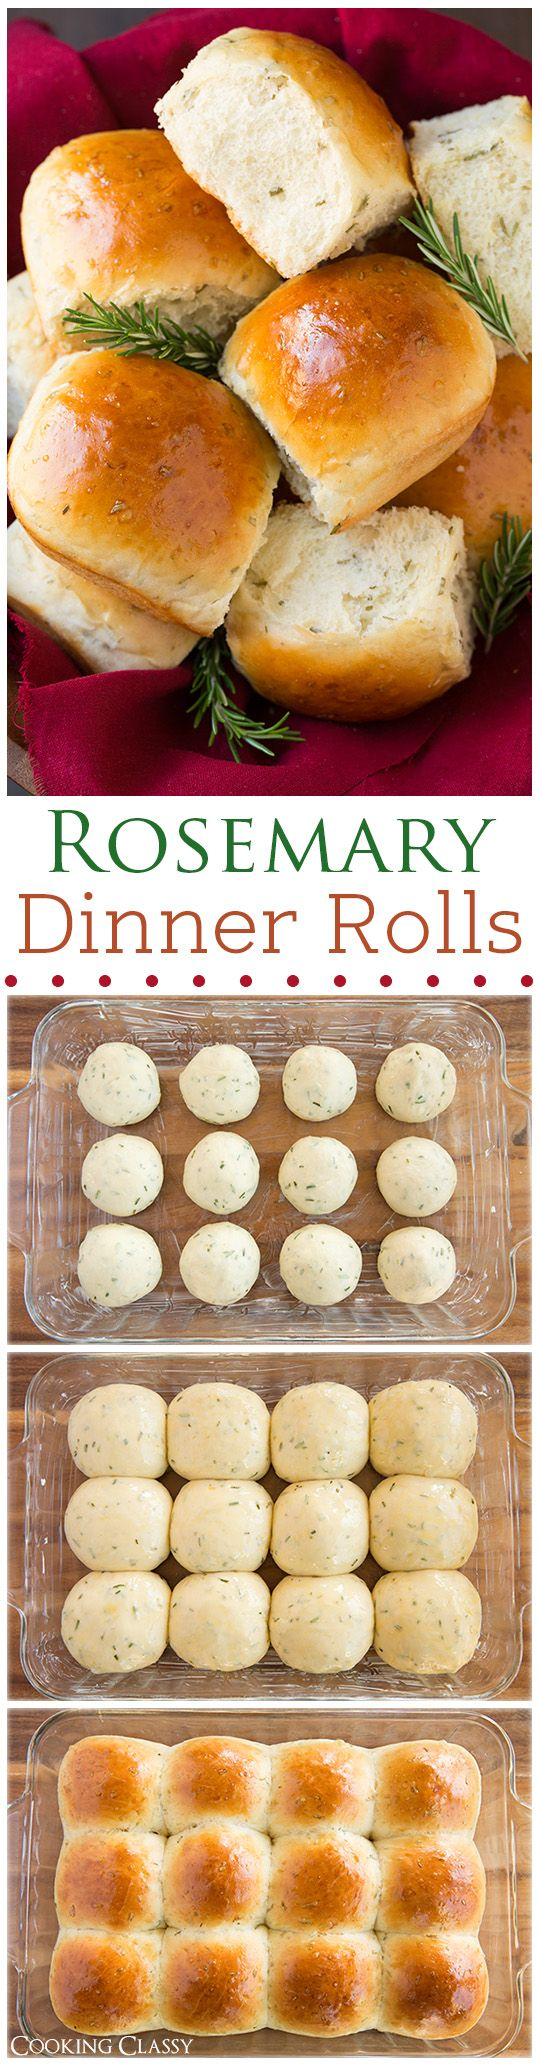 Rosemary Dinner Rolls - These rolls are heavenly! Light and fluffy and full of fresh rosemary flavor. I love them dipped in olive oil and cracked pepper.